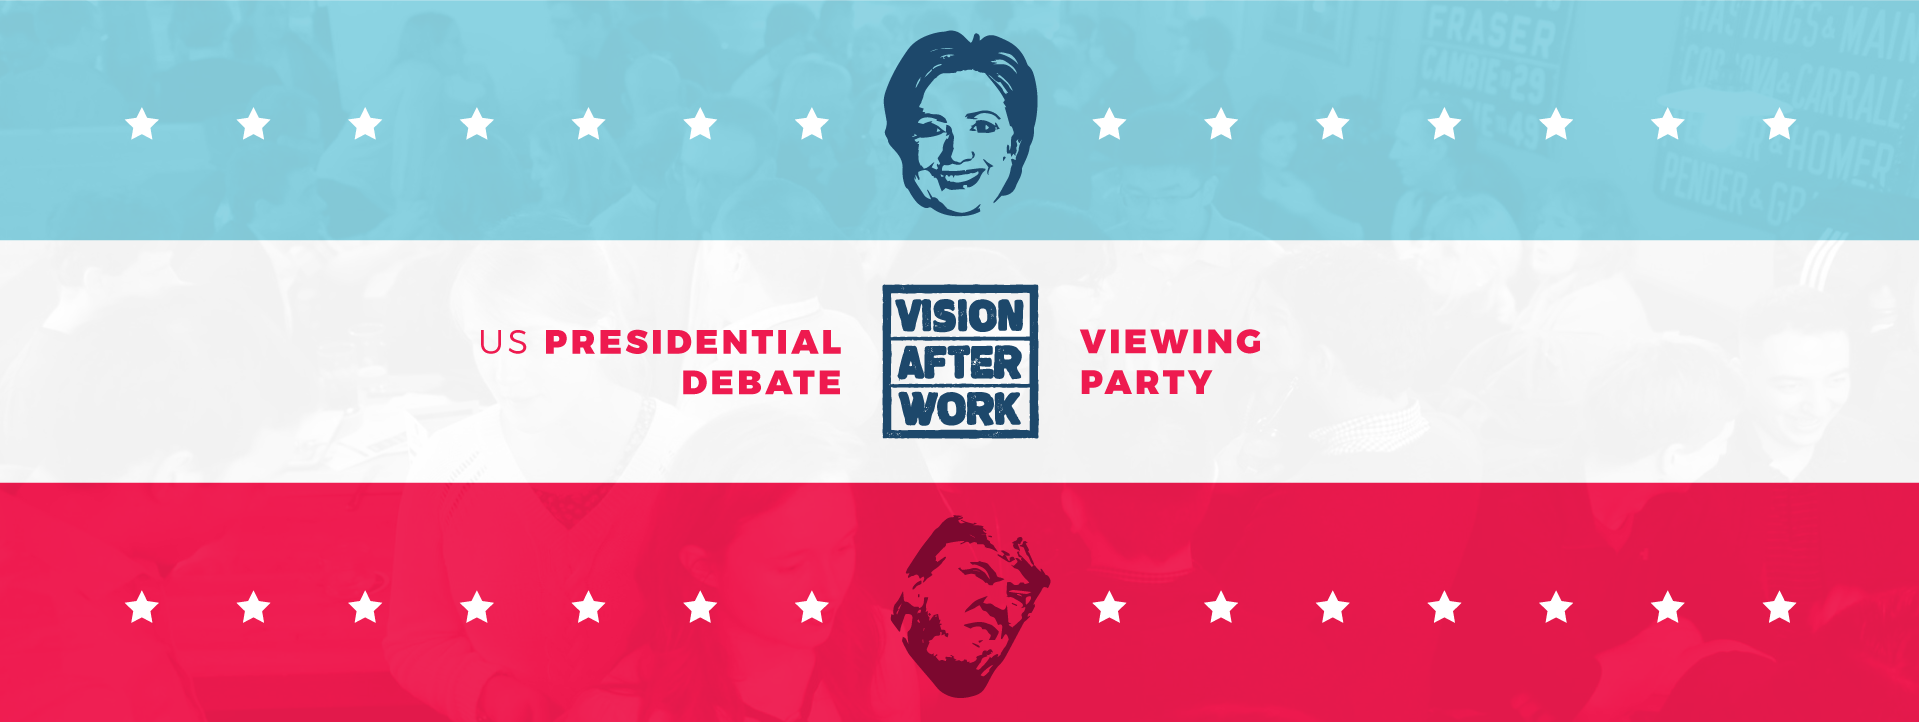 Vision After Work - Debate